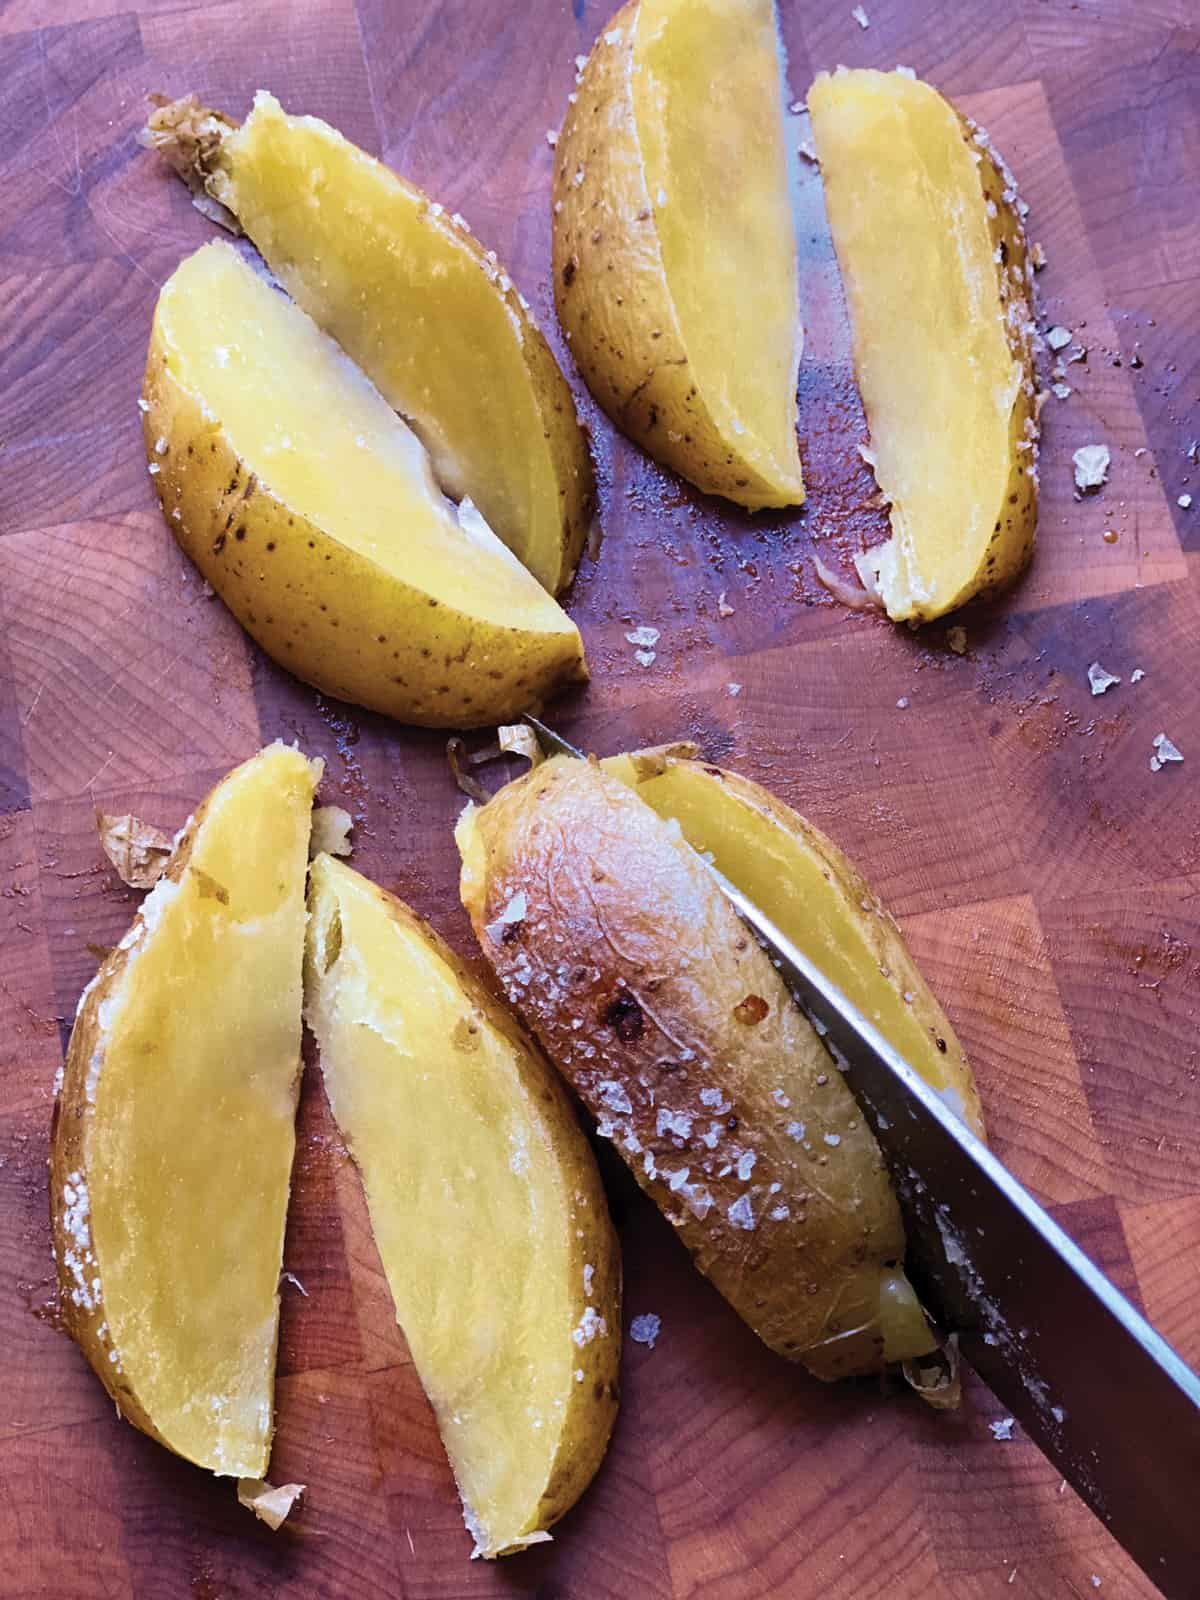 A hand cutting potatoes in wedges.